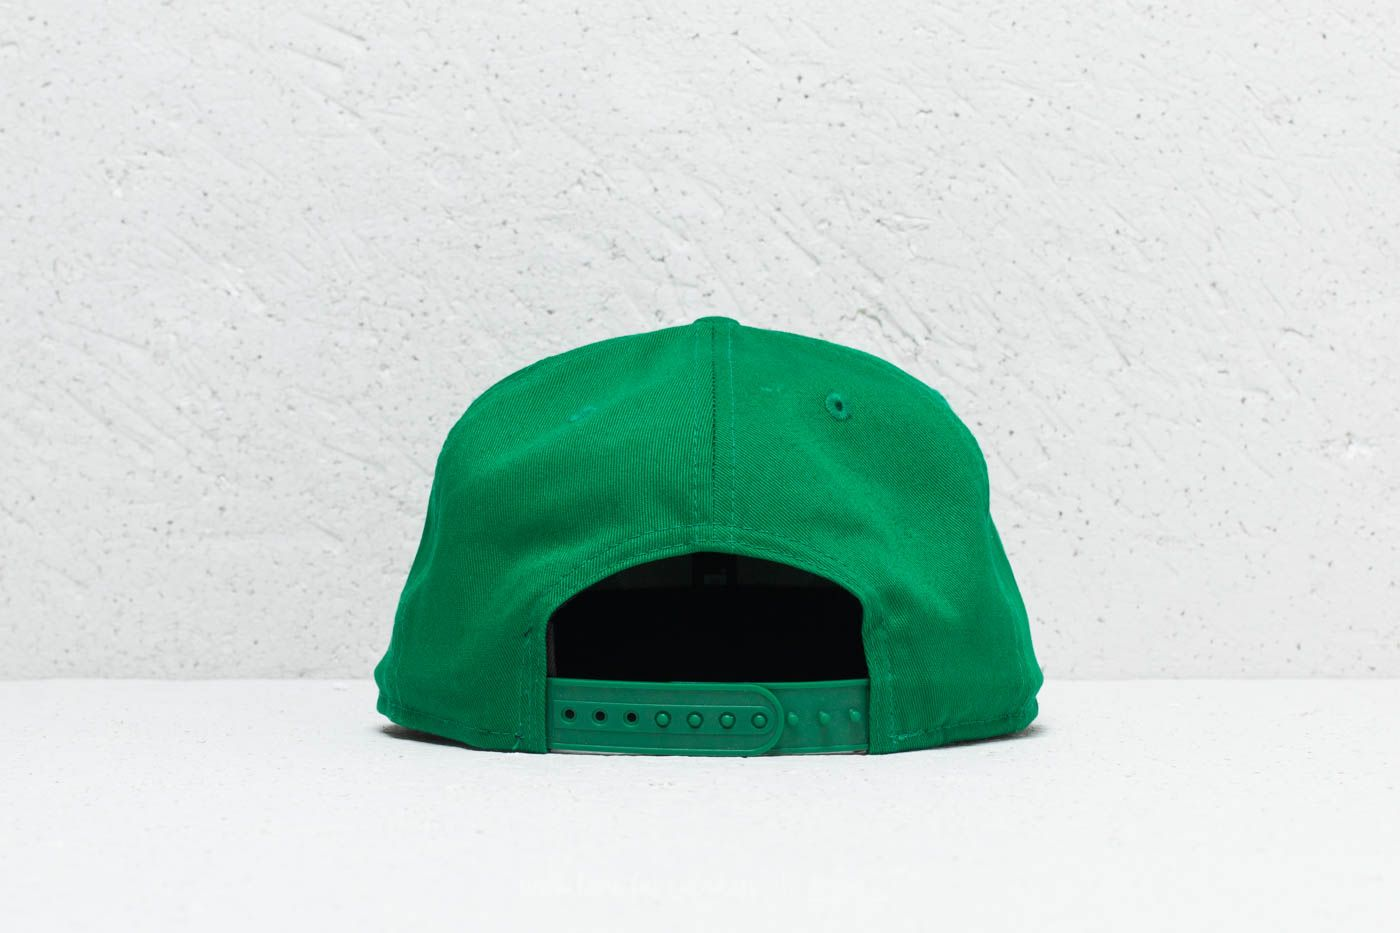 hot new era 9fifty nba boston celtics cap green at a great price 27 buy at 0f07ab1b133f